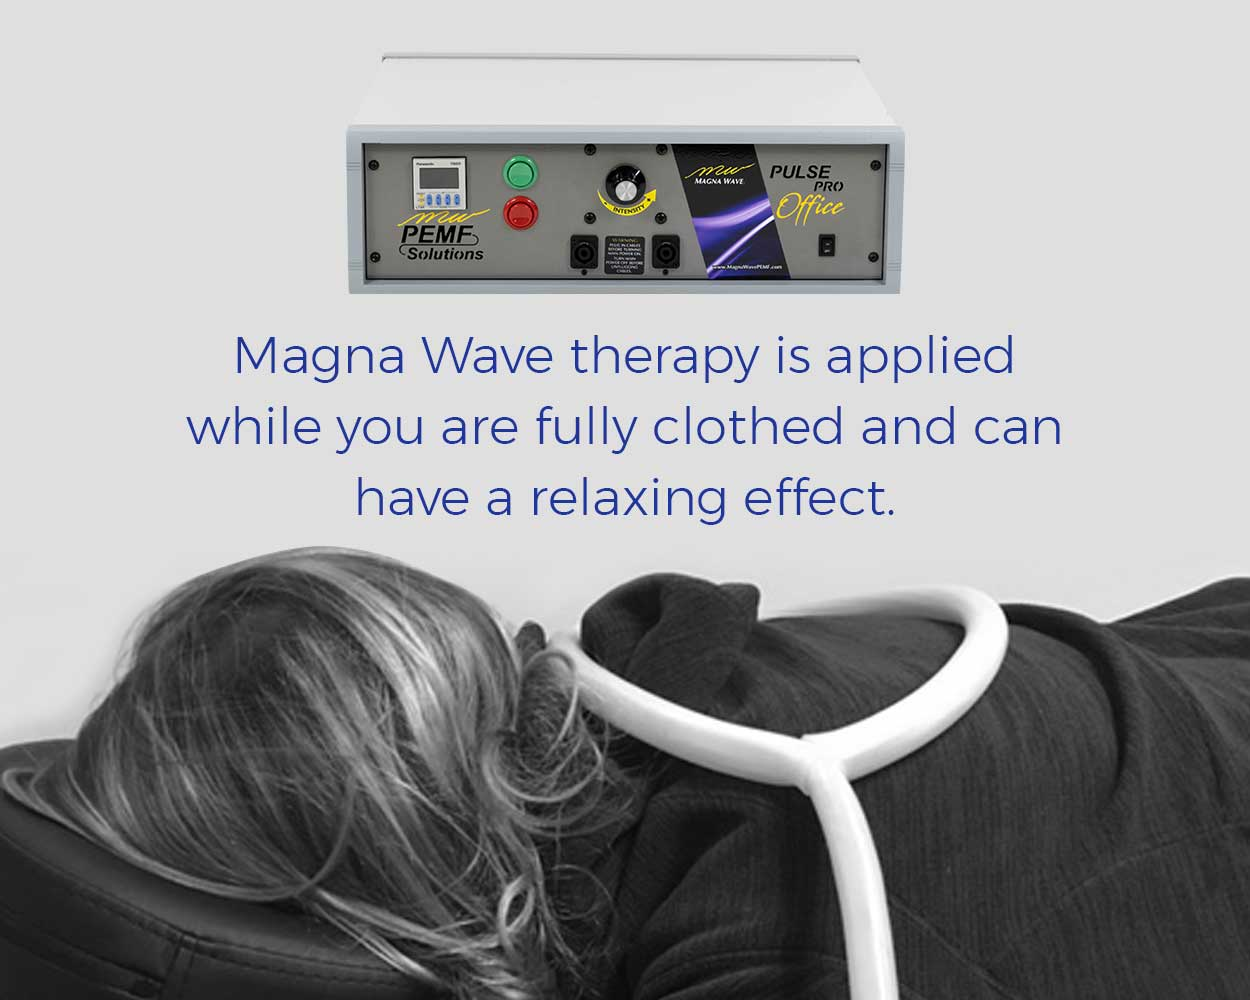 Magna Wave therapy is applied while you are fully clothed and can have a relaxing effect.